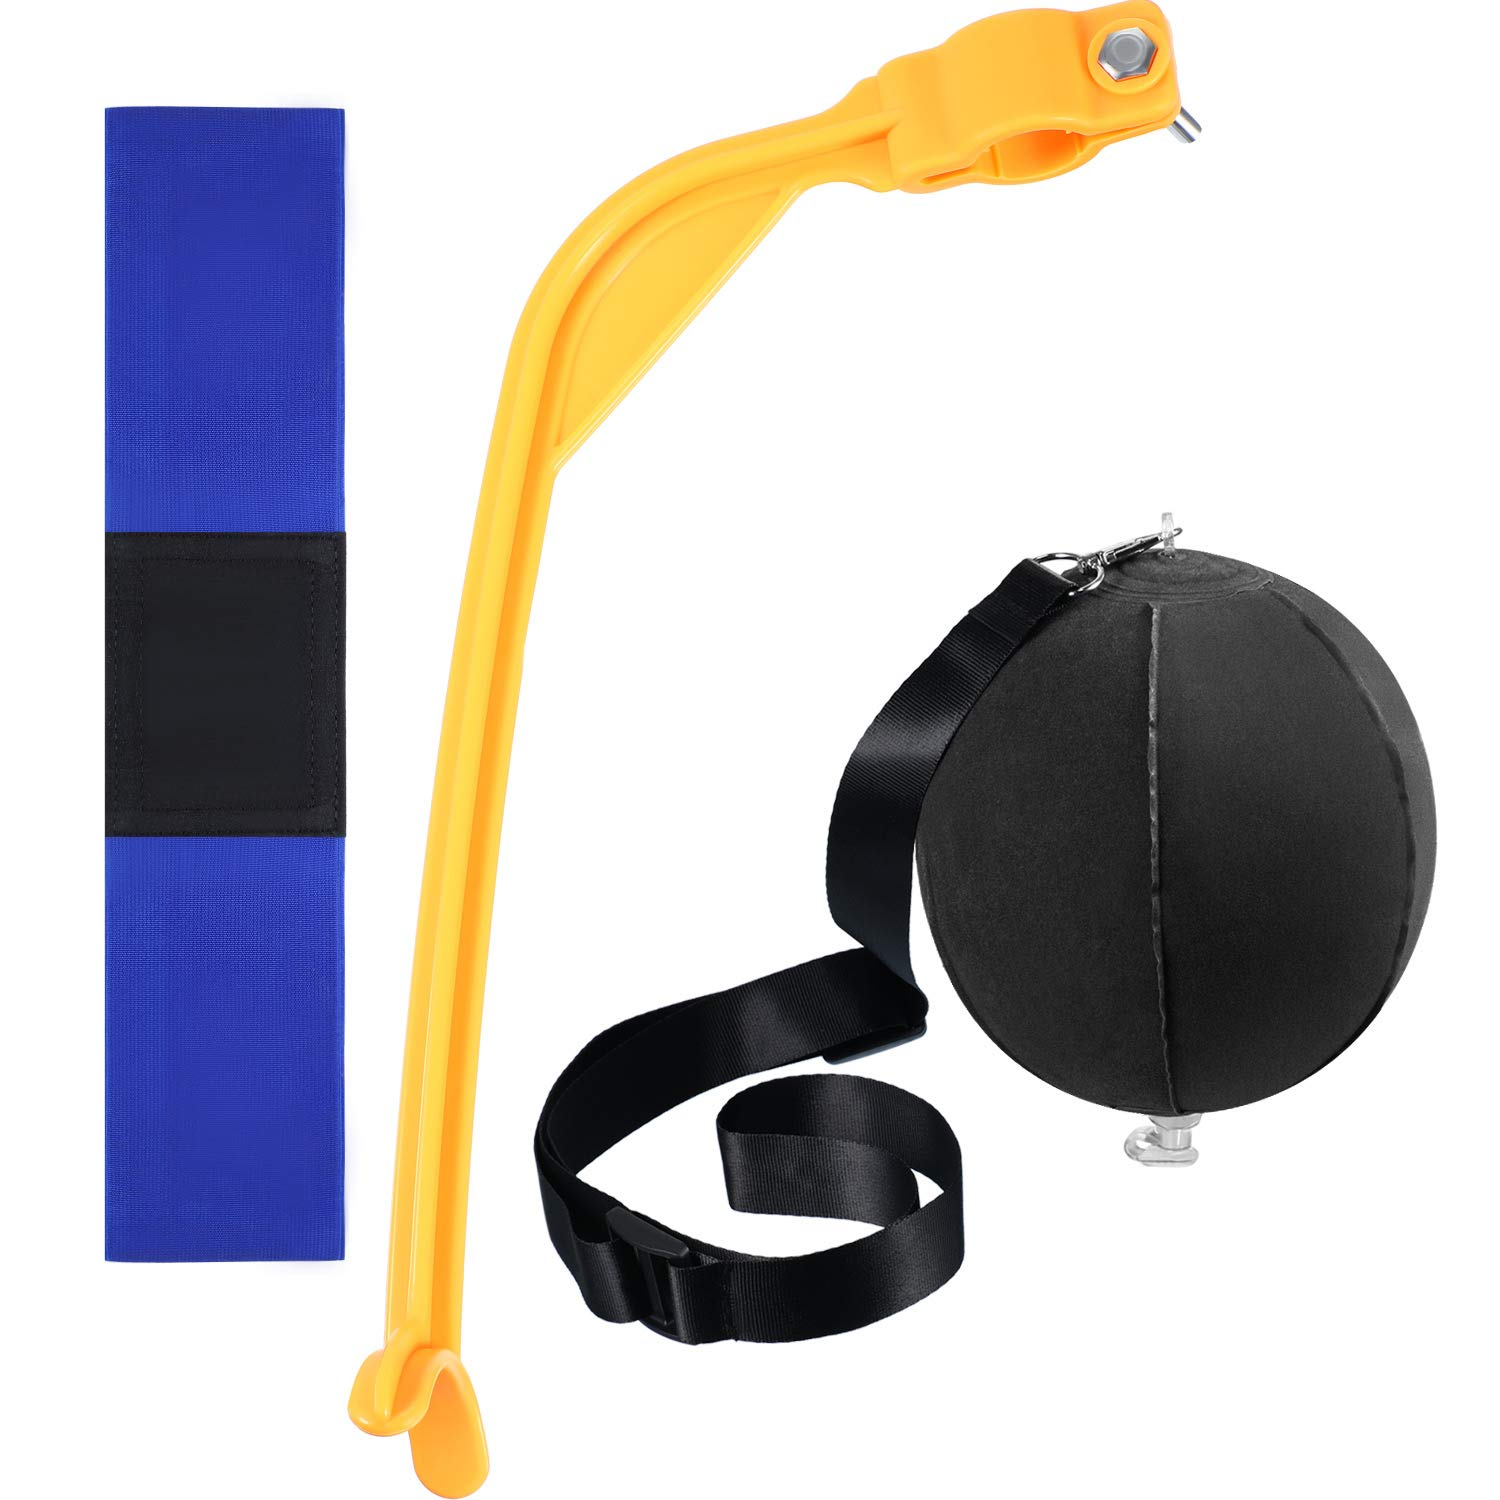 Gejoy 3 Pieces Golf Training Aids Swing Trainer Assist Set Include Golf Impact Ball, Swing Trainer and Golf Swing Band by Gejoy